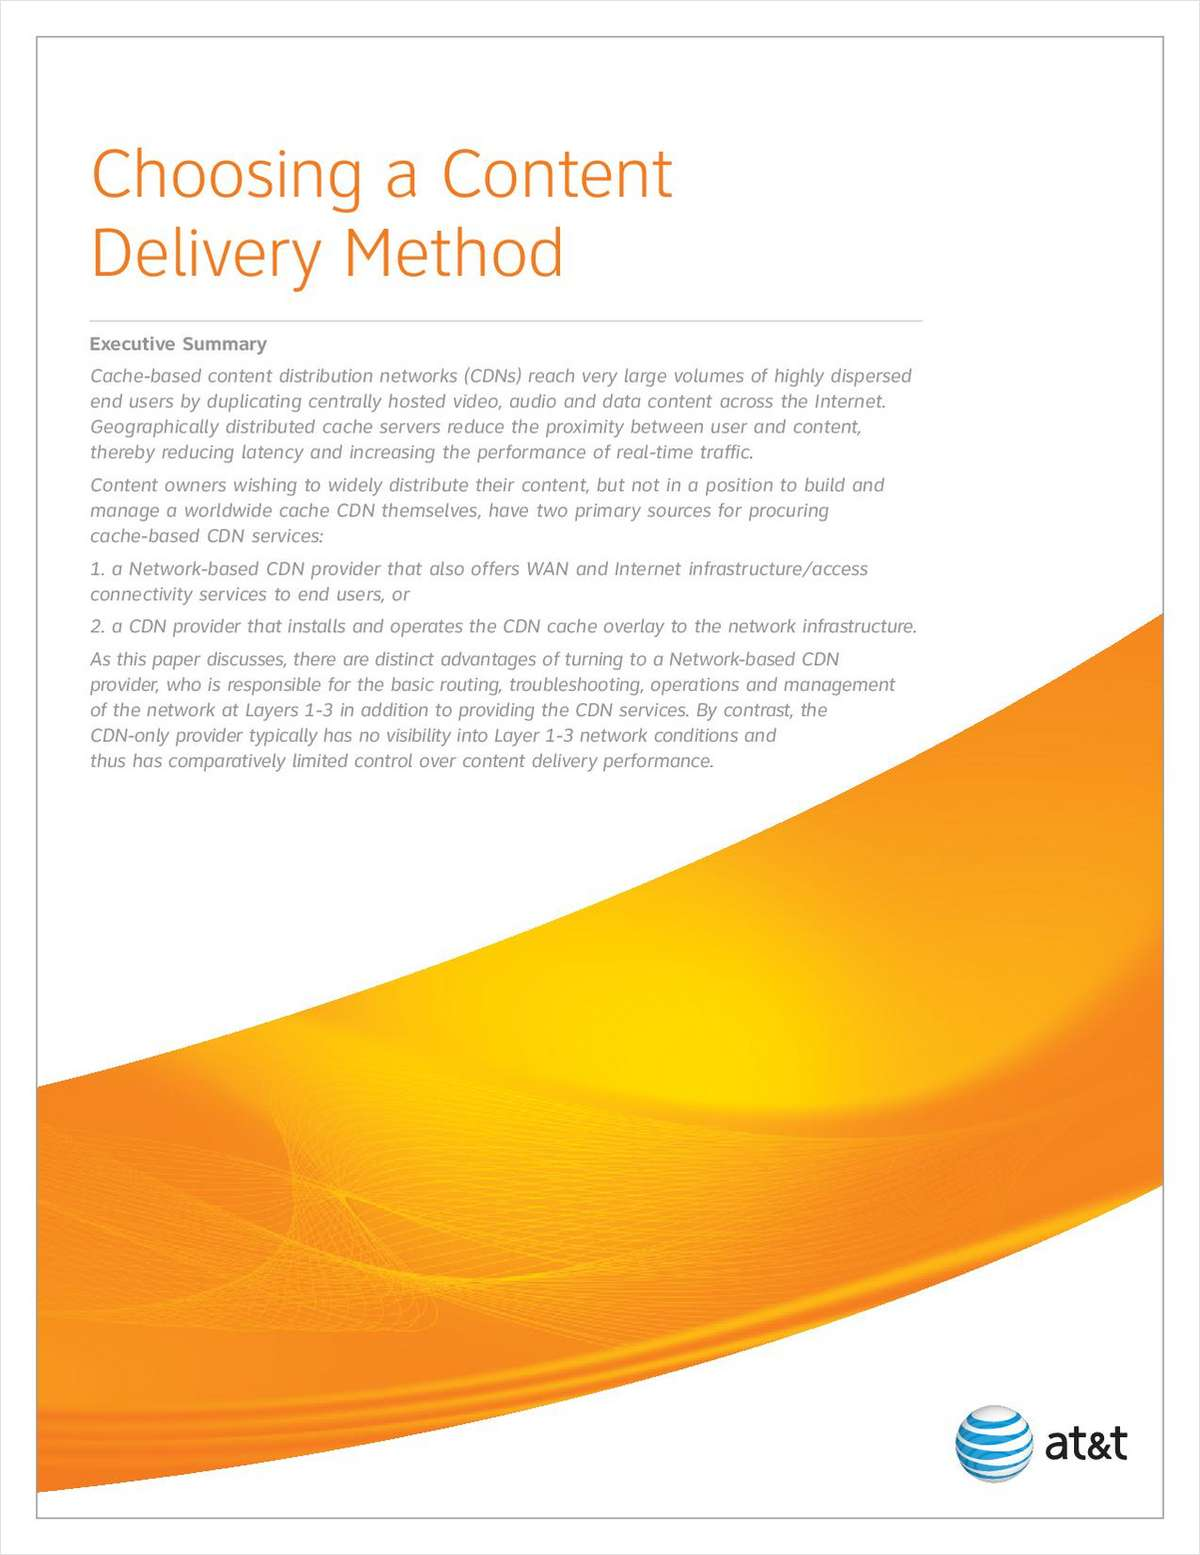 Choosing a Content Delivery Method